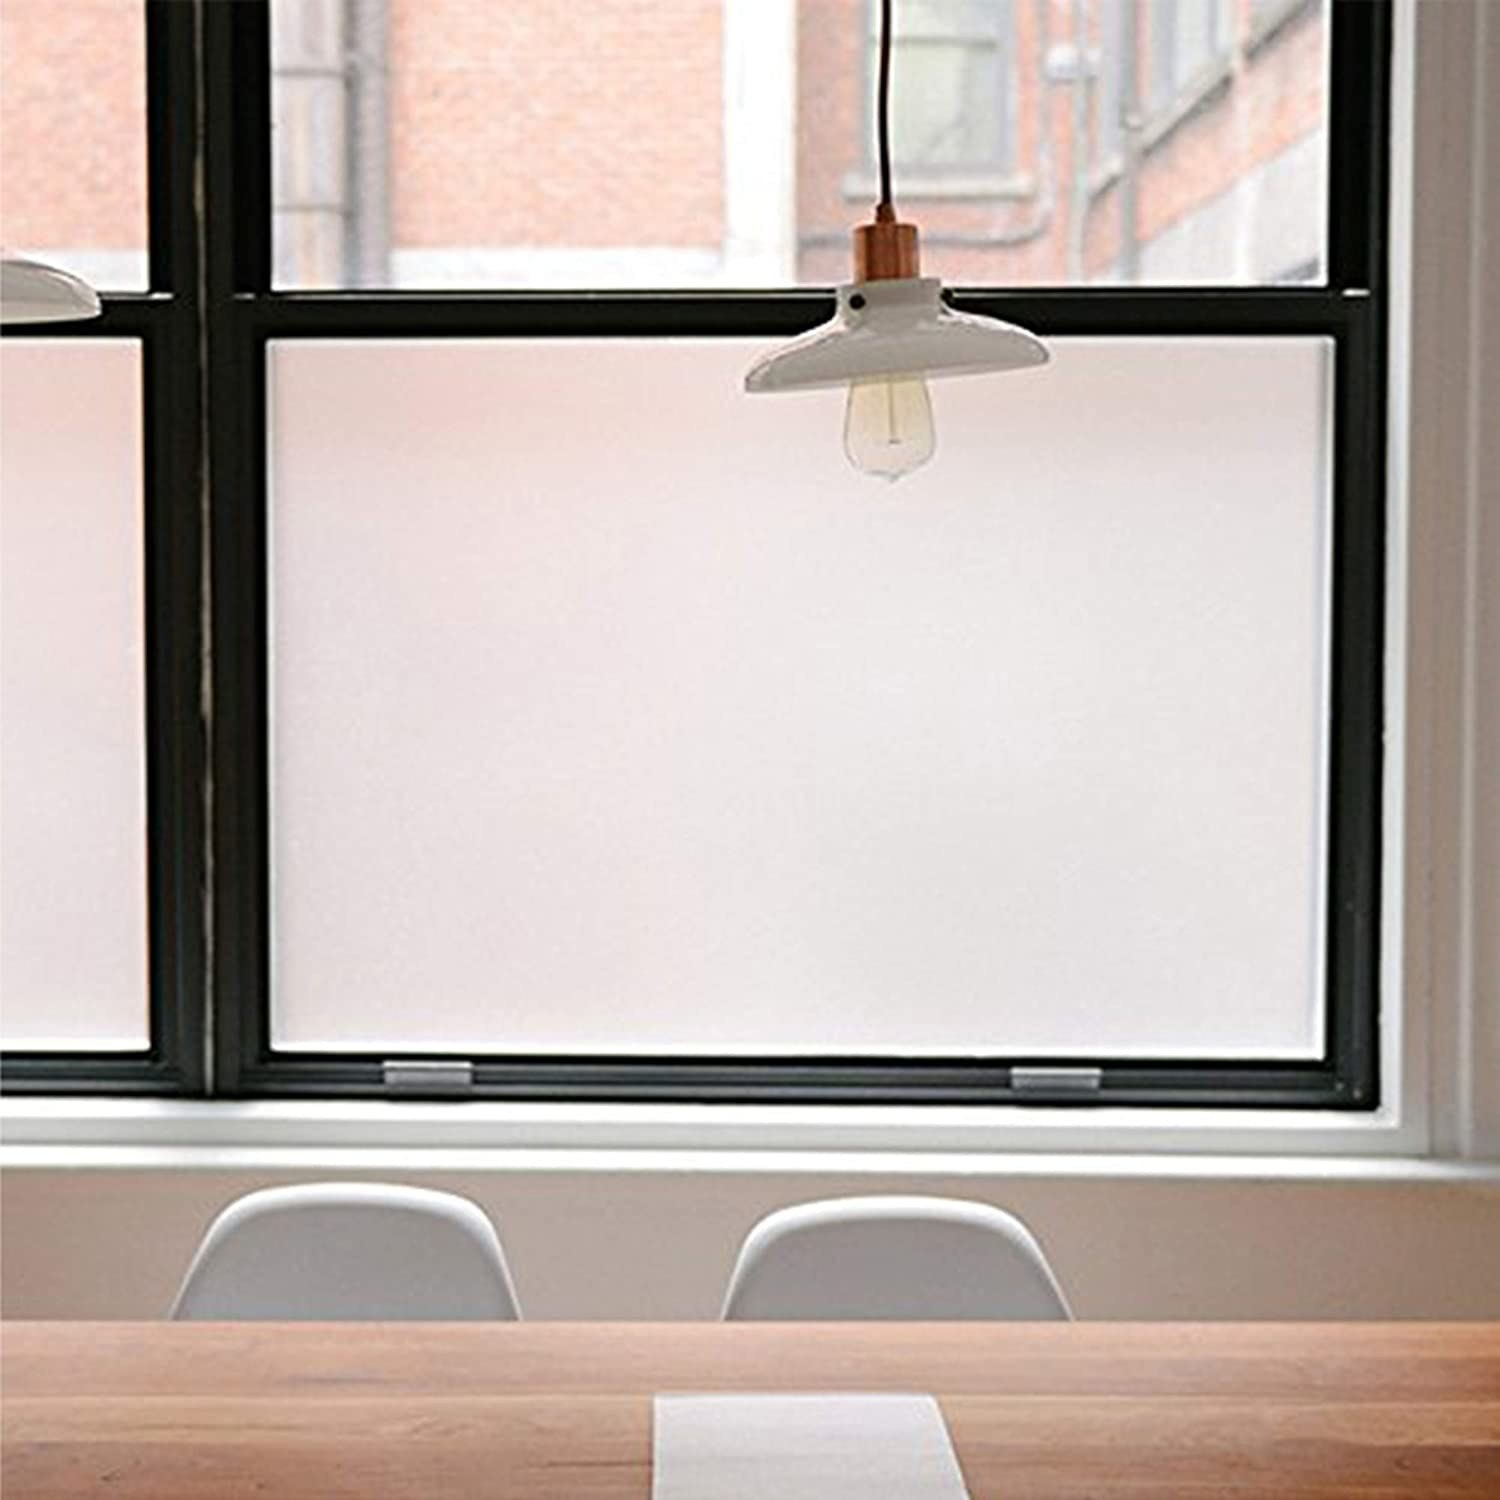 A privacy film on a window in front of chairs